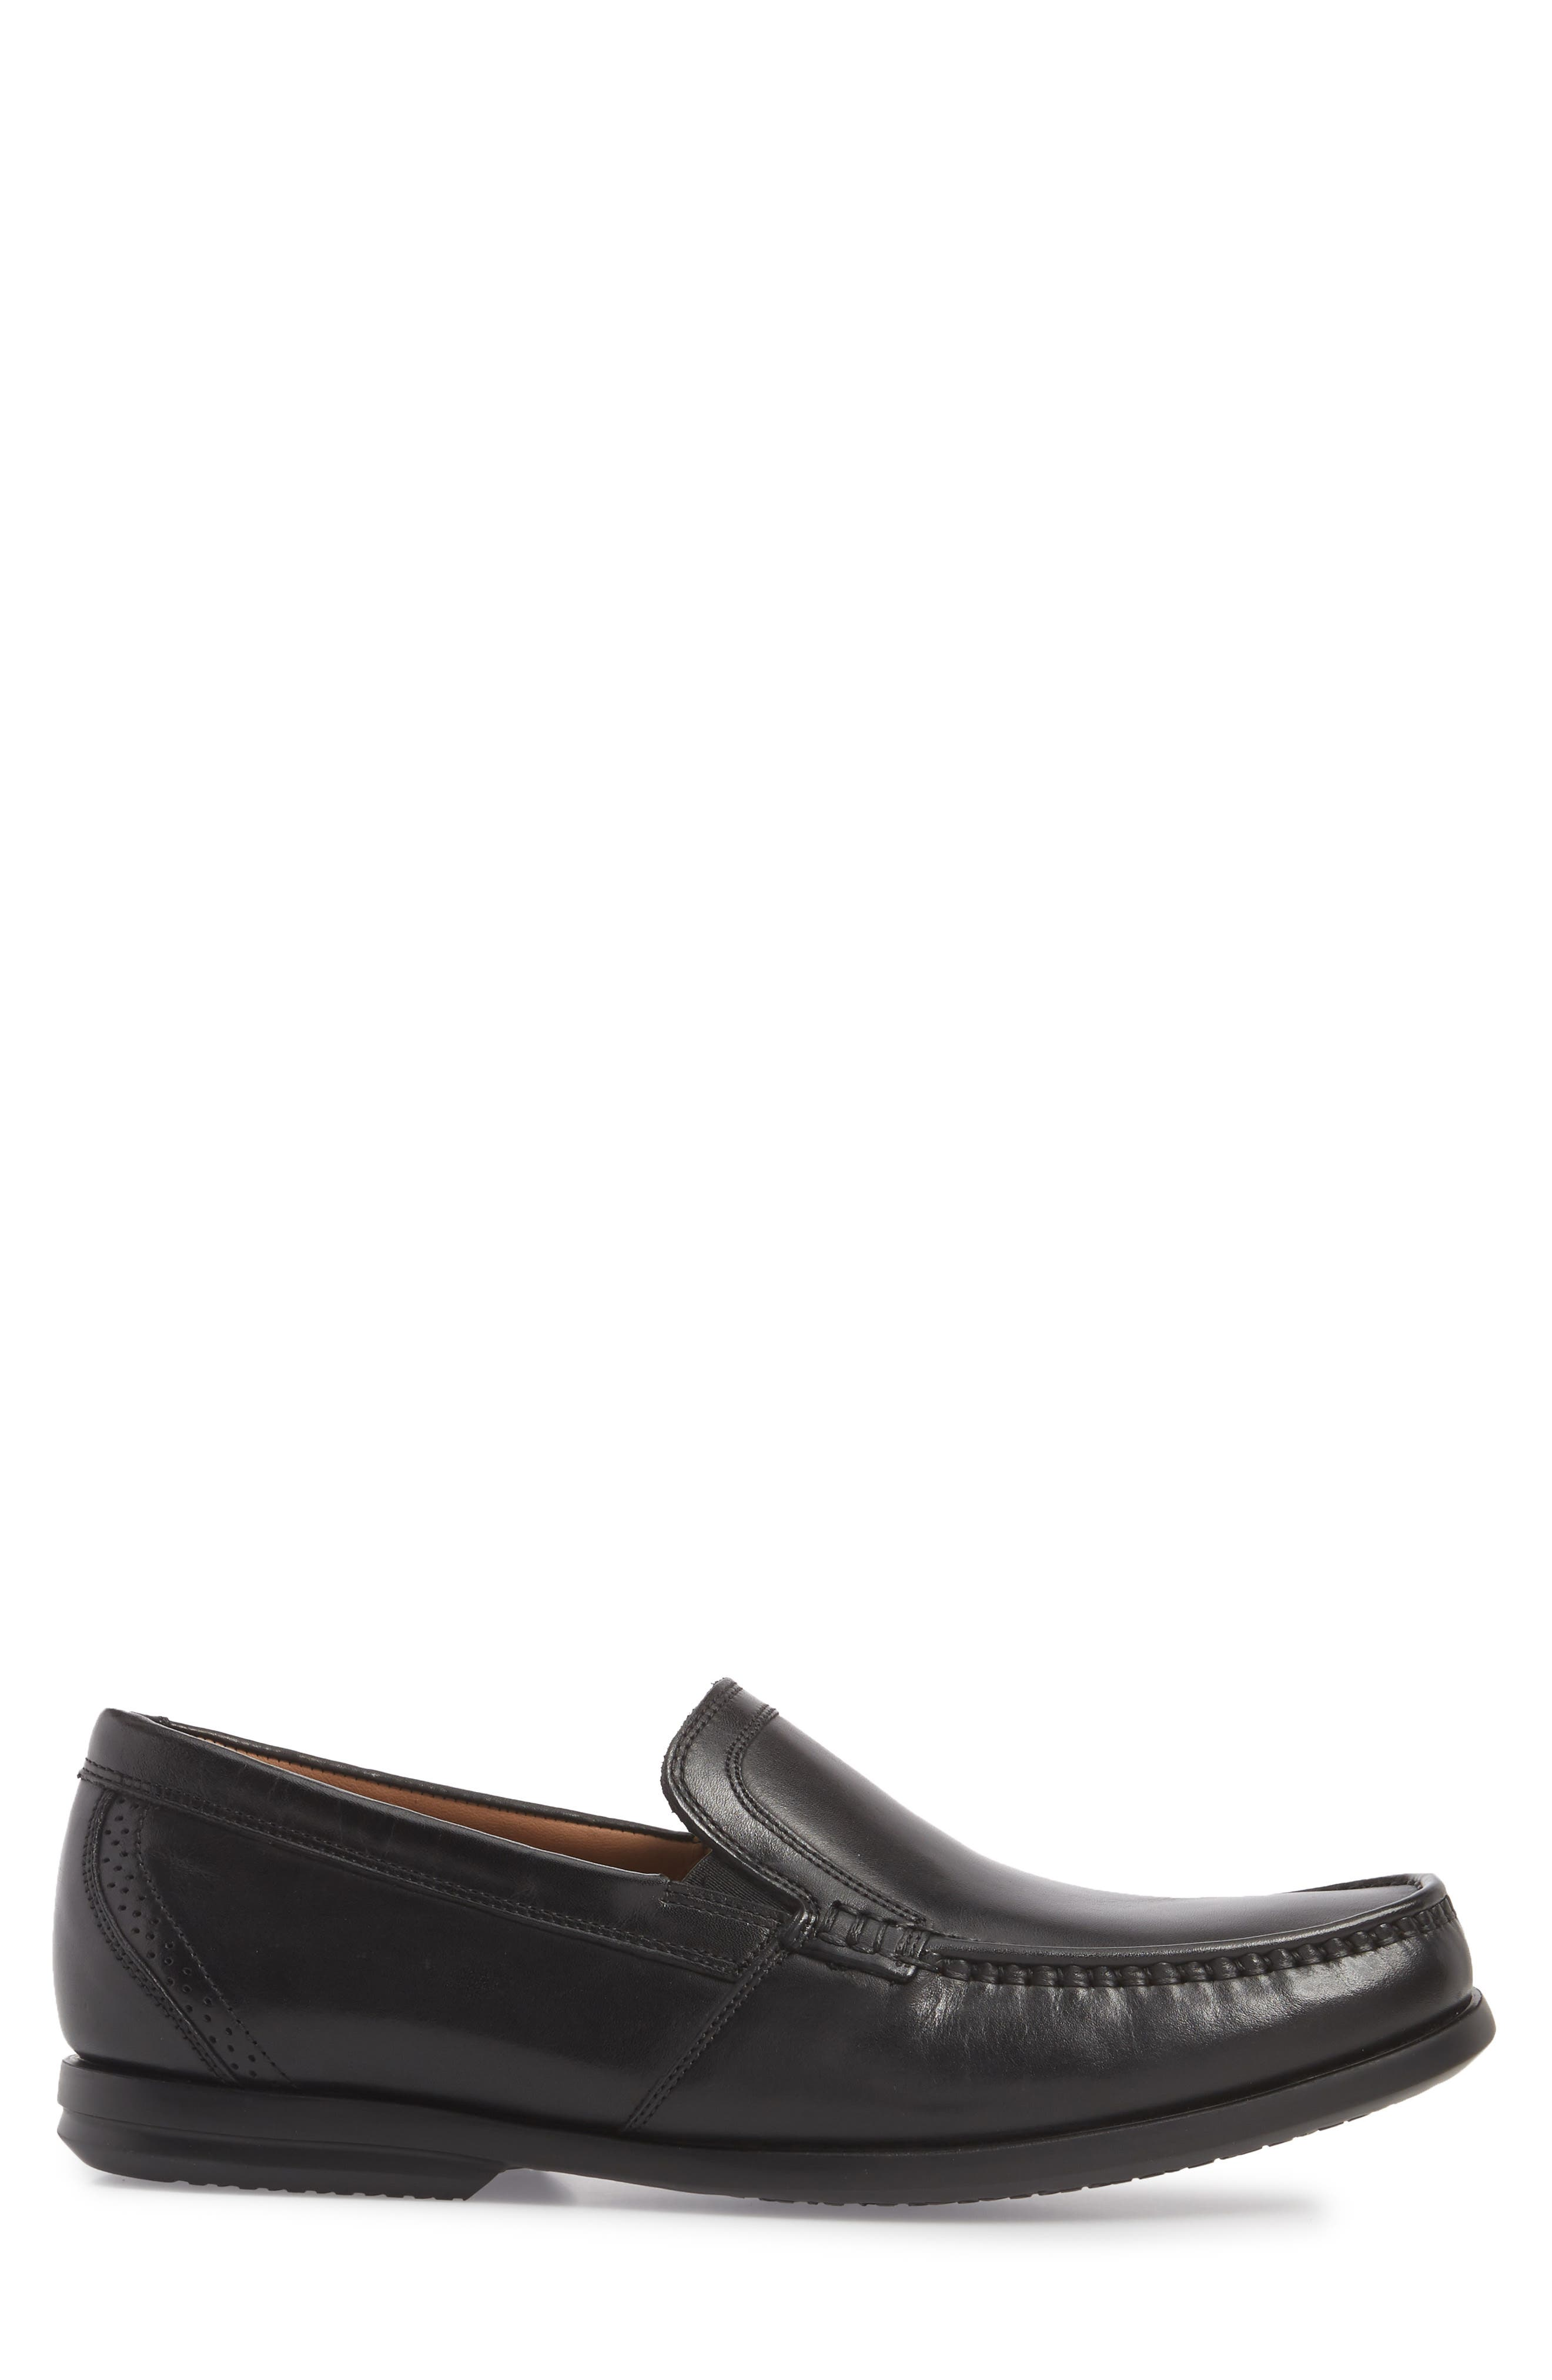 Clarks<sup>®</sup> Ungala Free Venetian Loafer,                             Alternate thumbnail 3, color,                             003